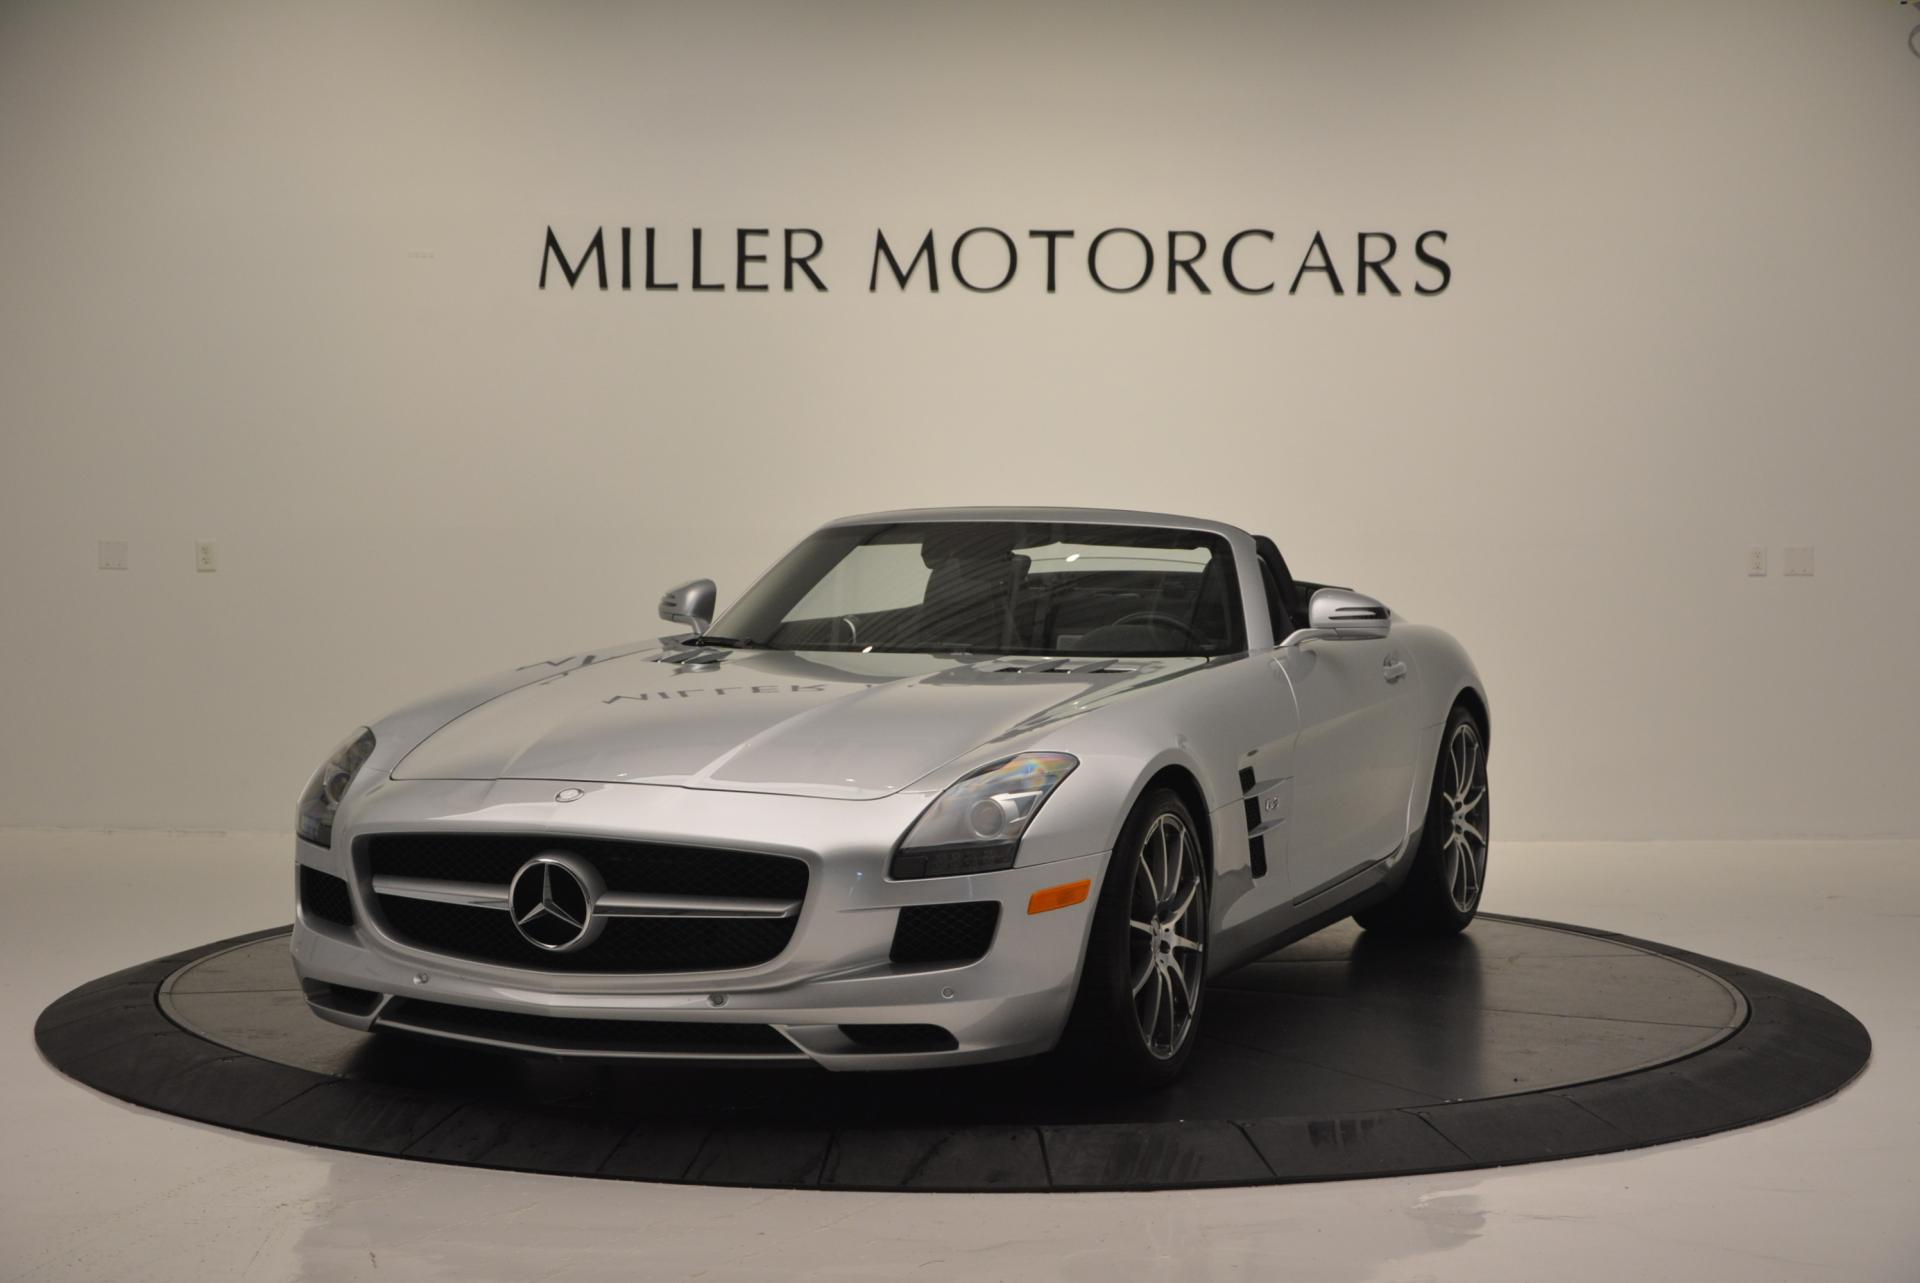 Used 2012 Mercedes Benz SLS AMG  For Sale In Greenwich, CT. Alfa Romeo of Greenwich, 7058 517_main